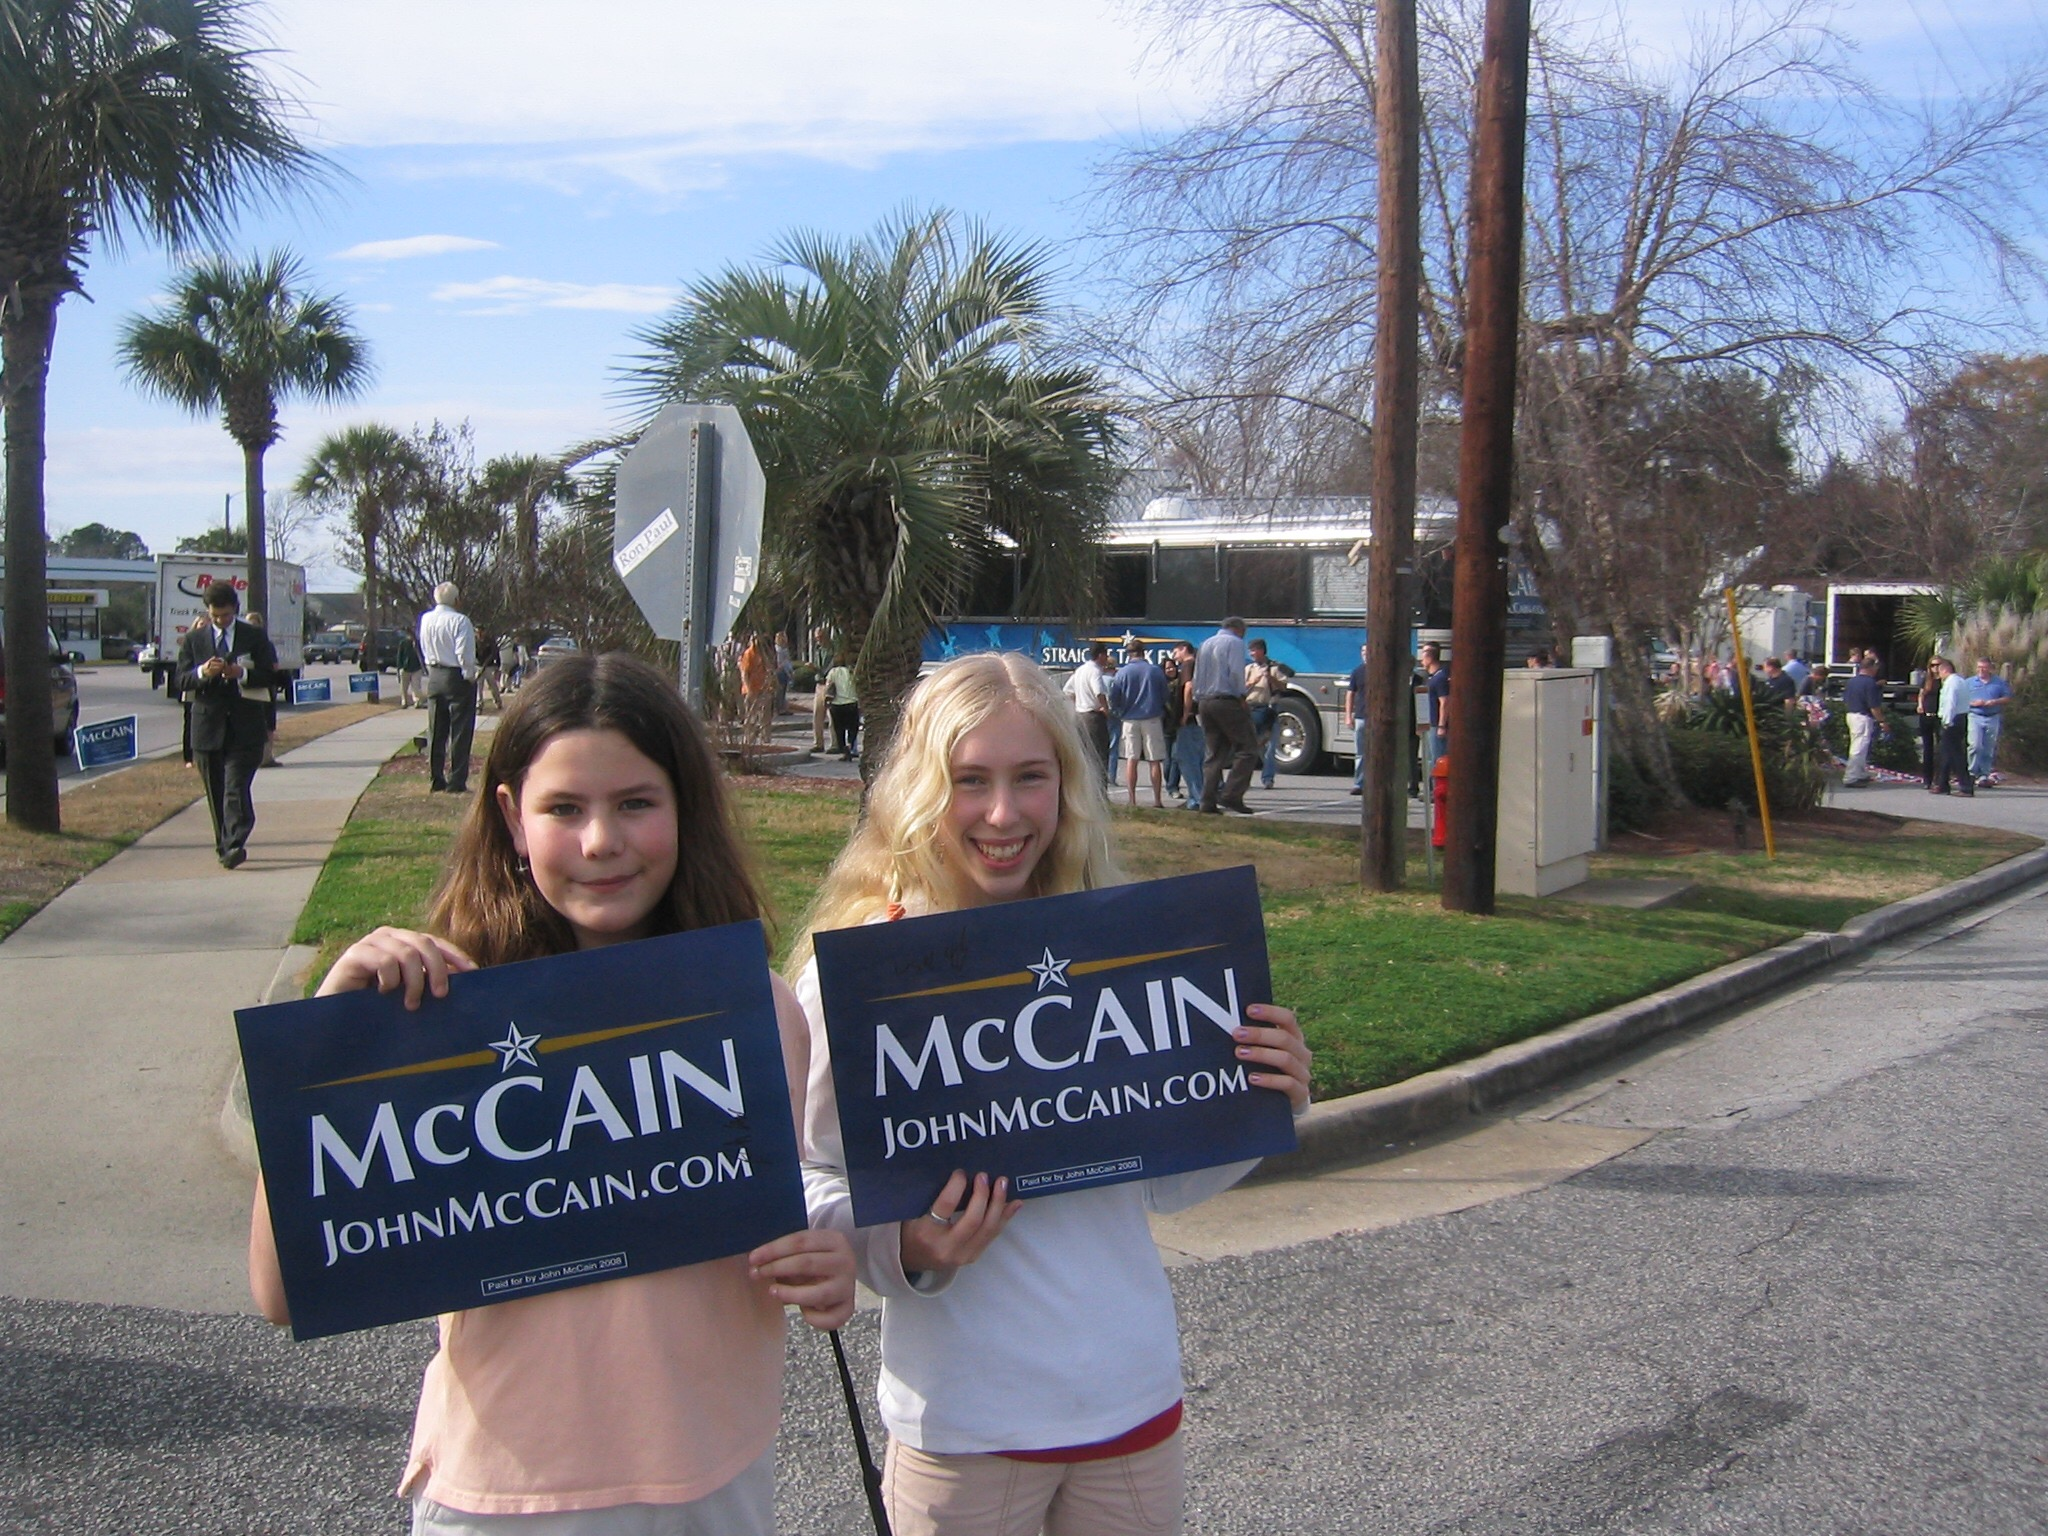 McCain Rally posters